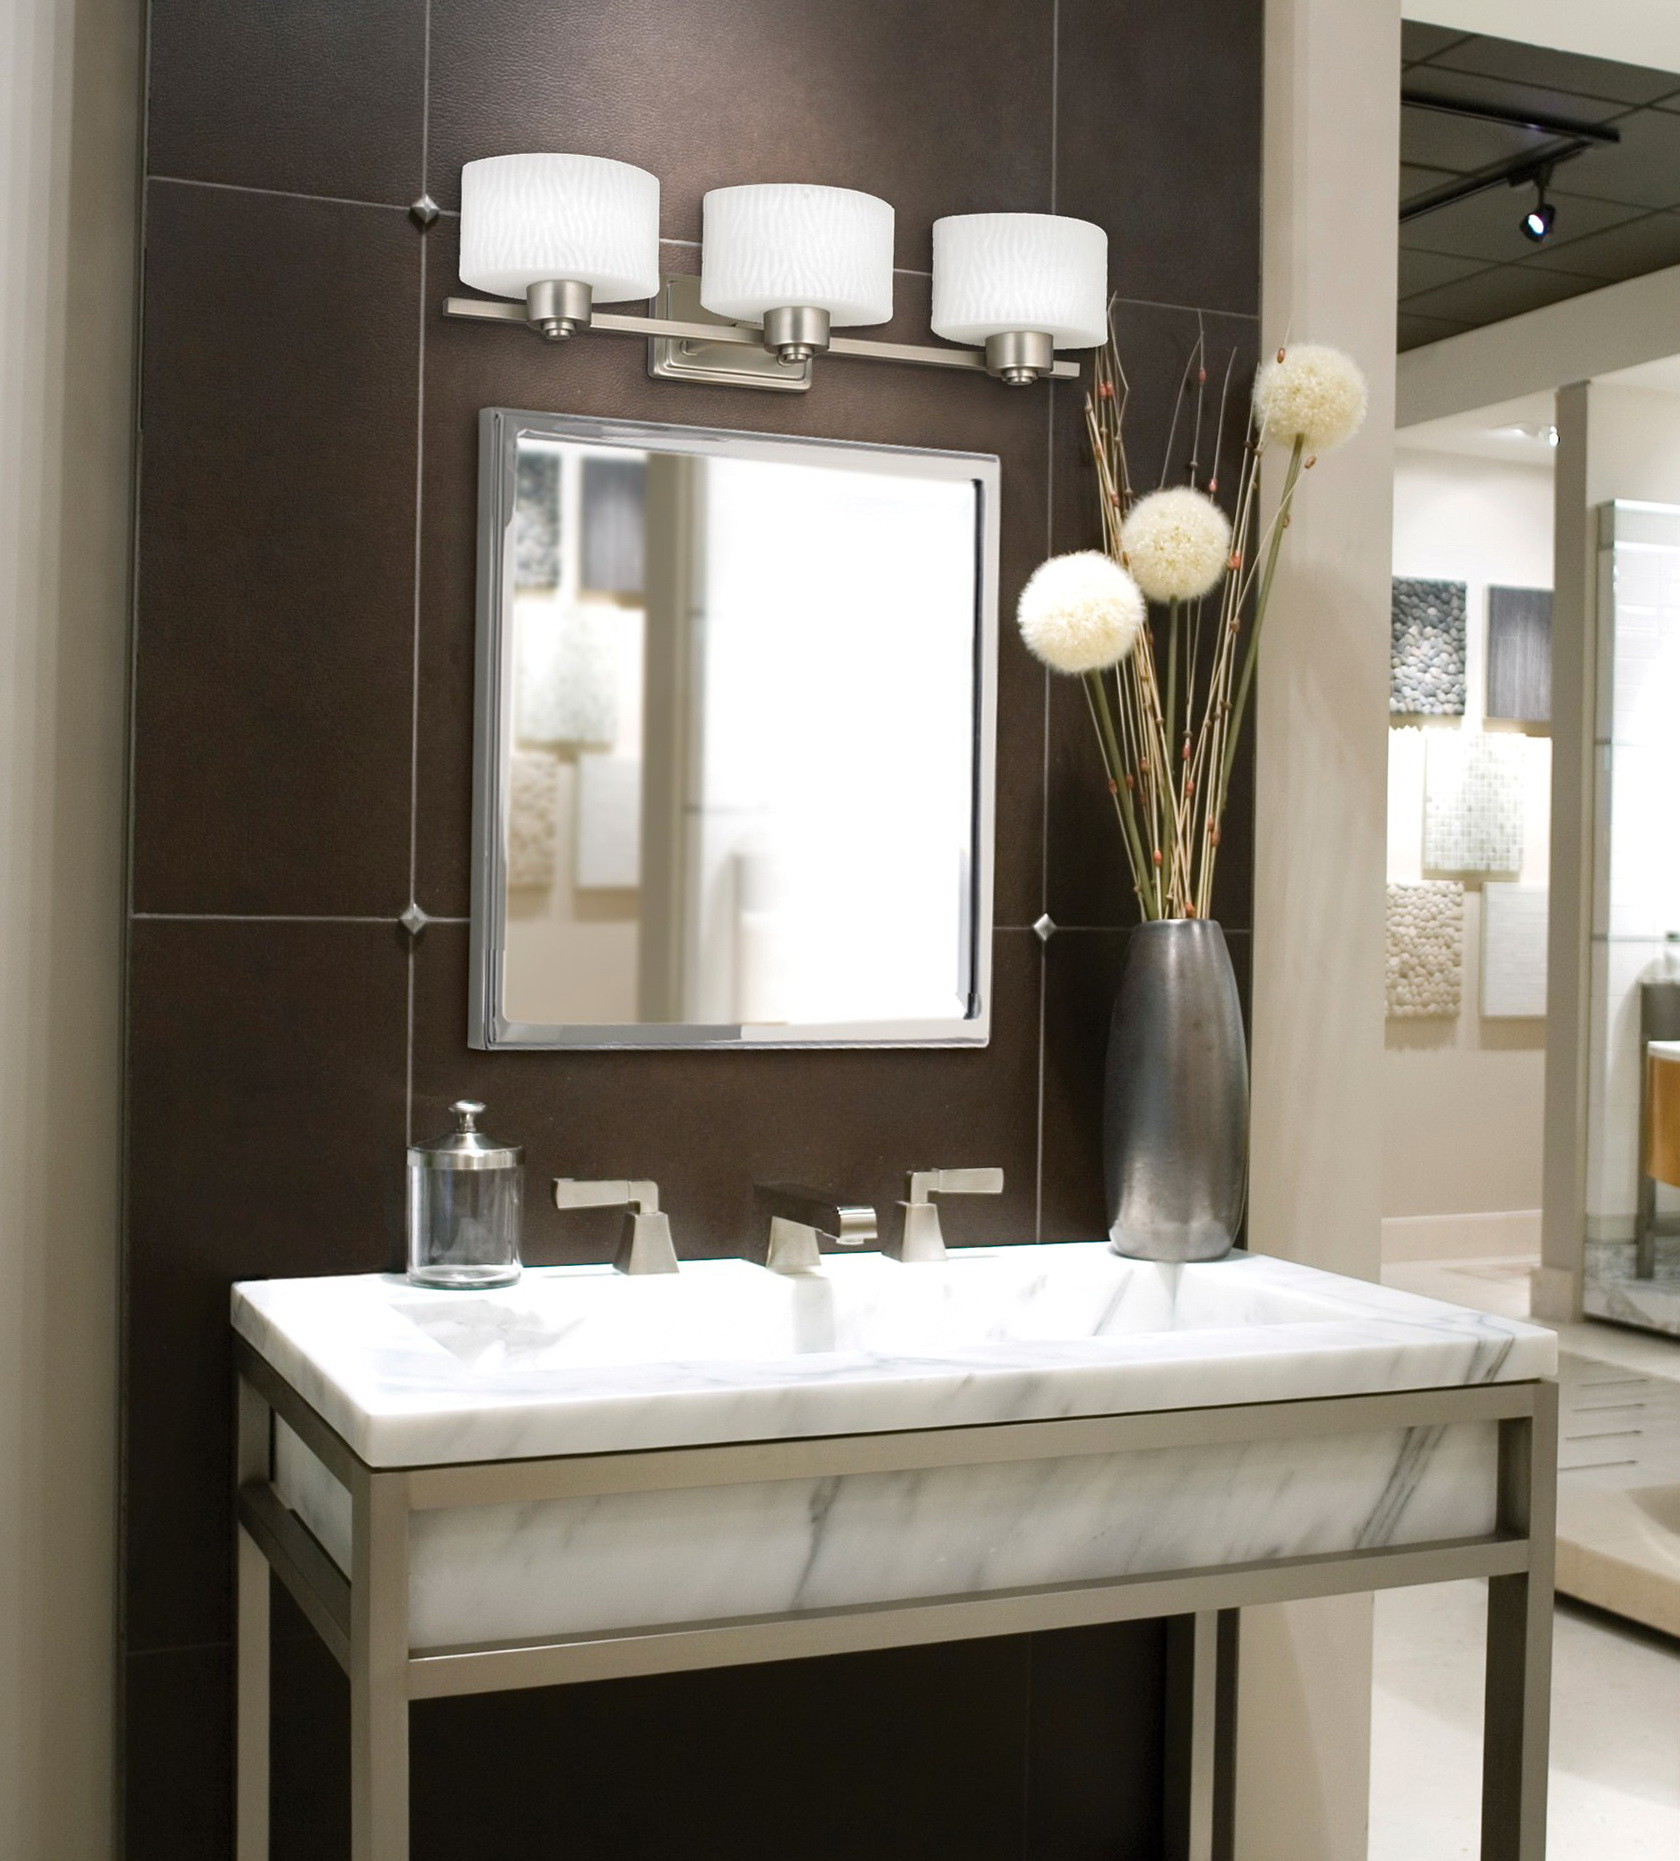 bathroom vanity mirrors with lights bathroom vanity wondrous bathroom vanity mirrors for com ideas brushed  nickel BZJZQFA